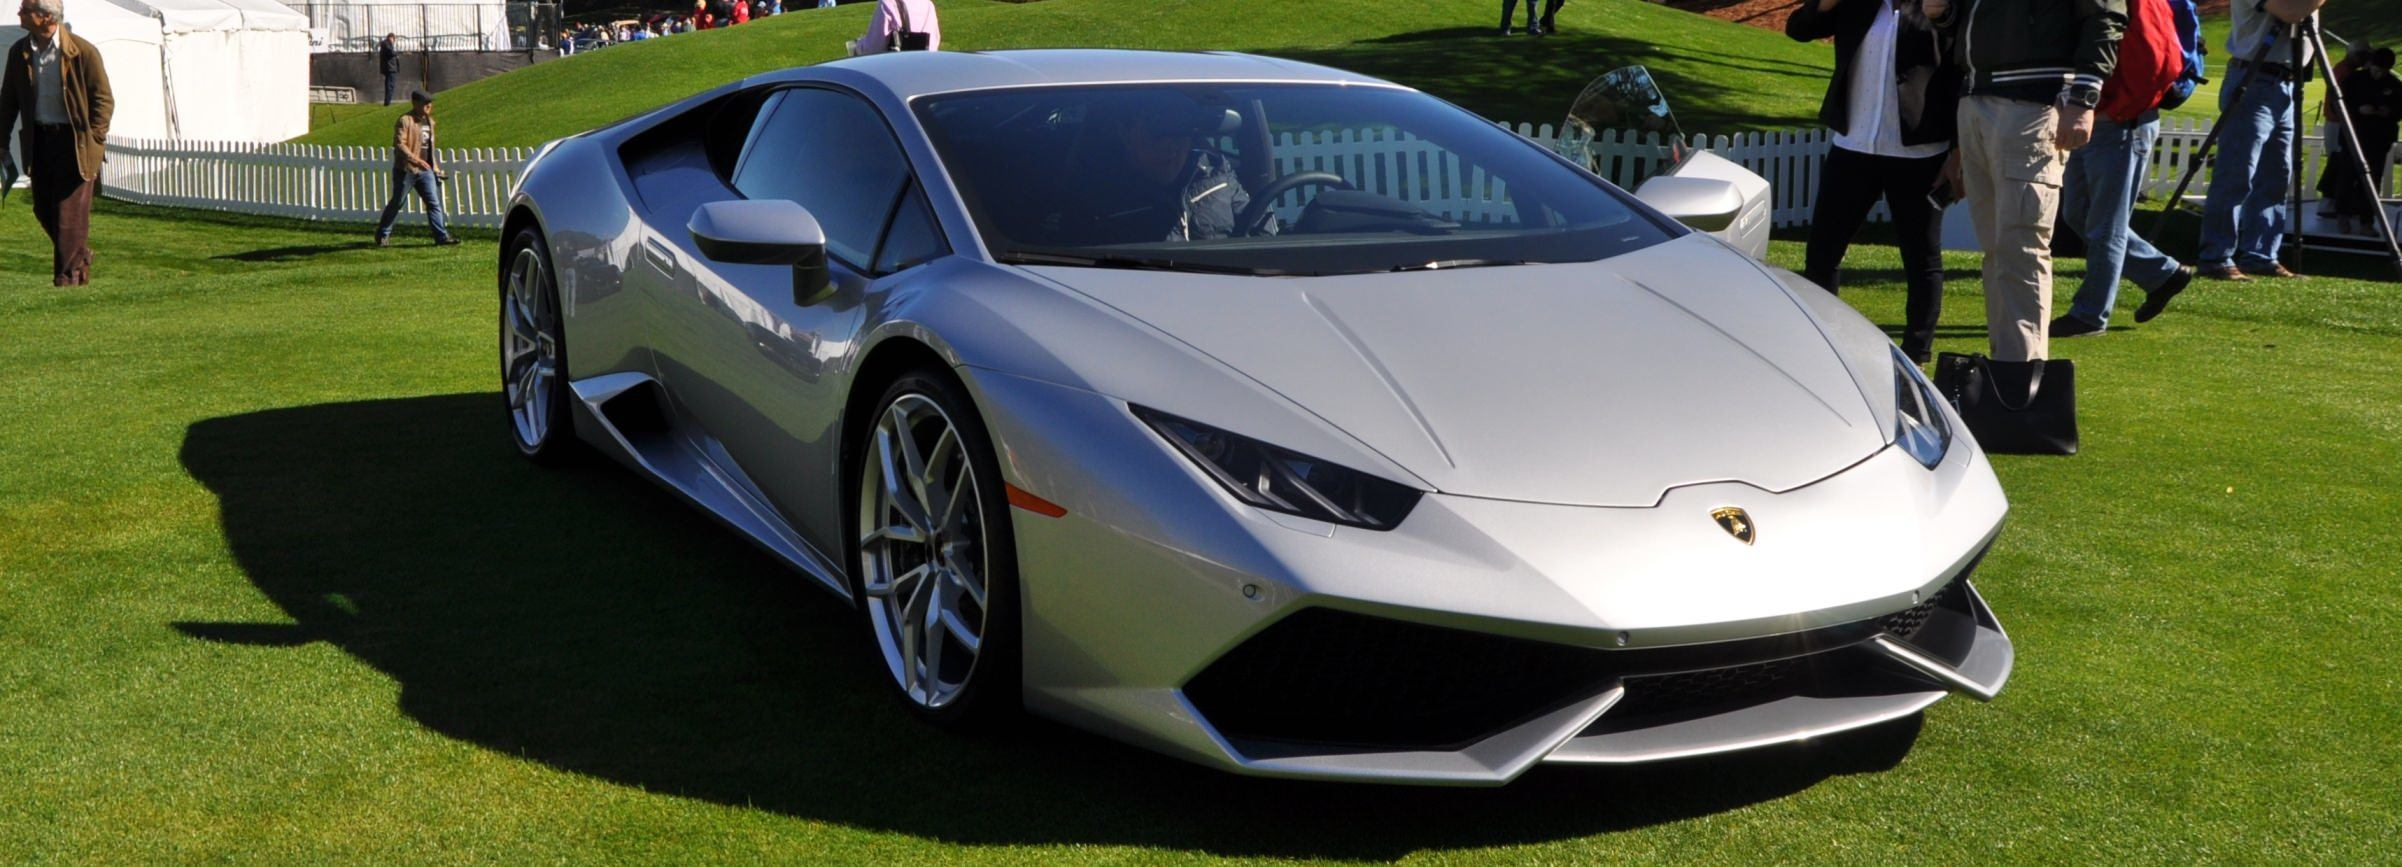 2015 Lamborghini Huracan -- First Outdoor Display in America 5